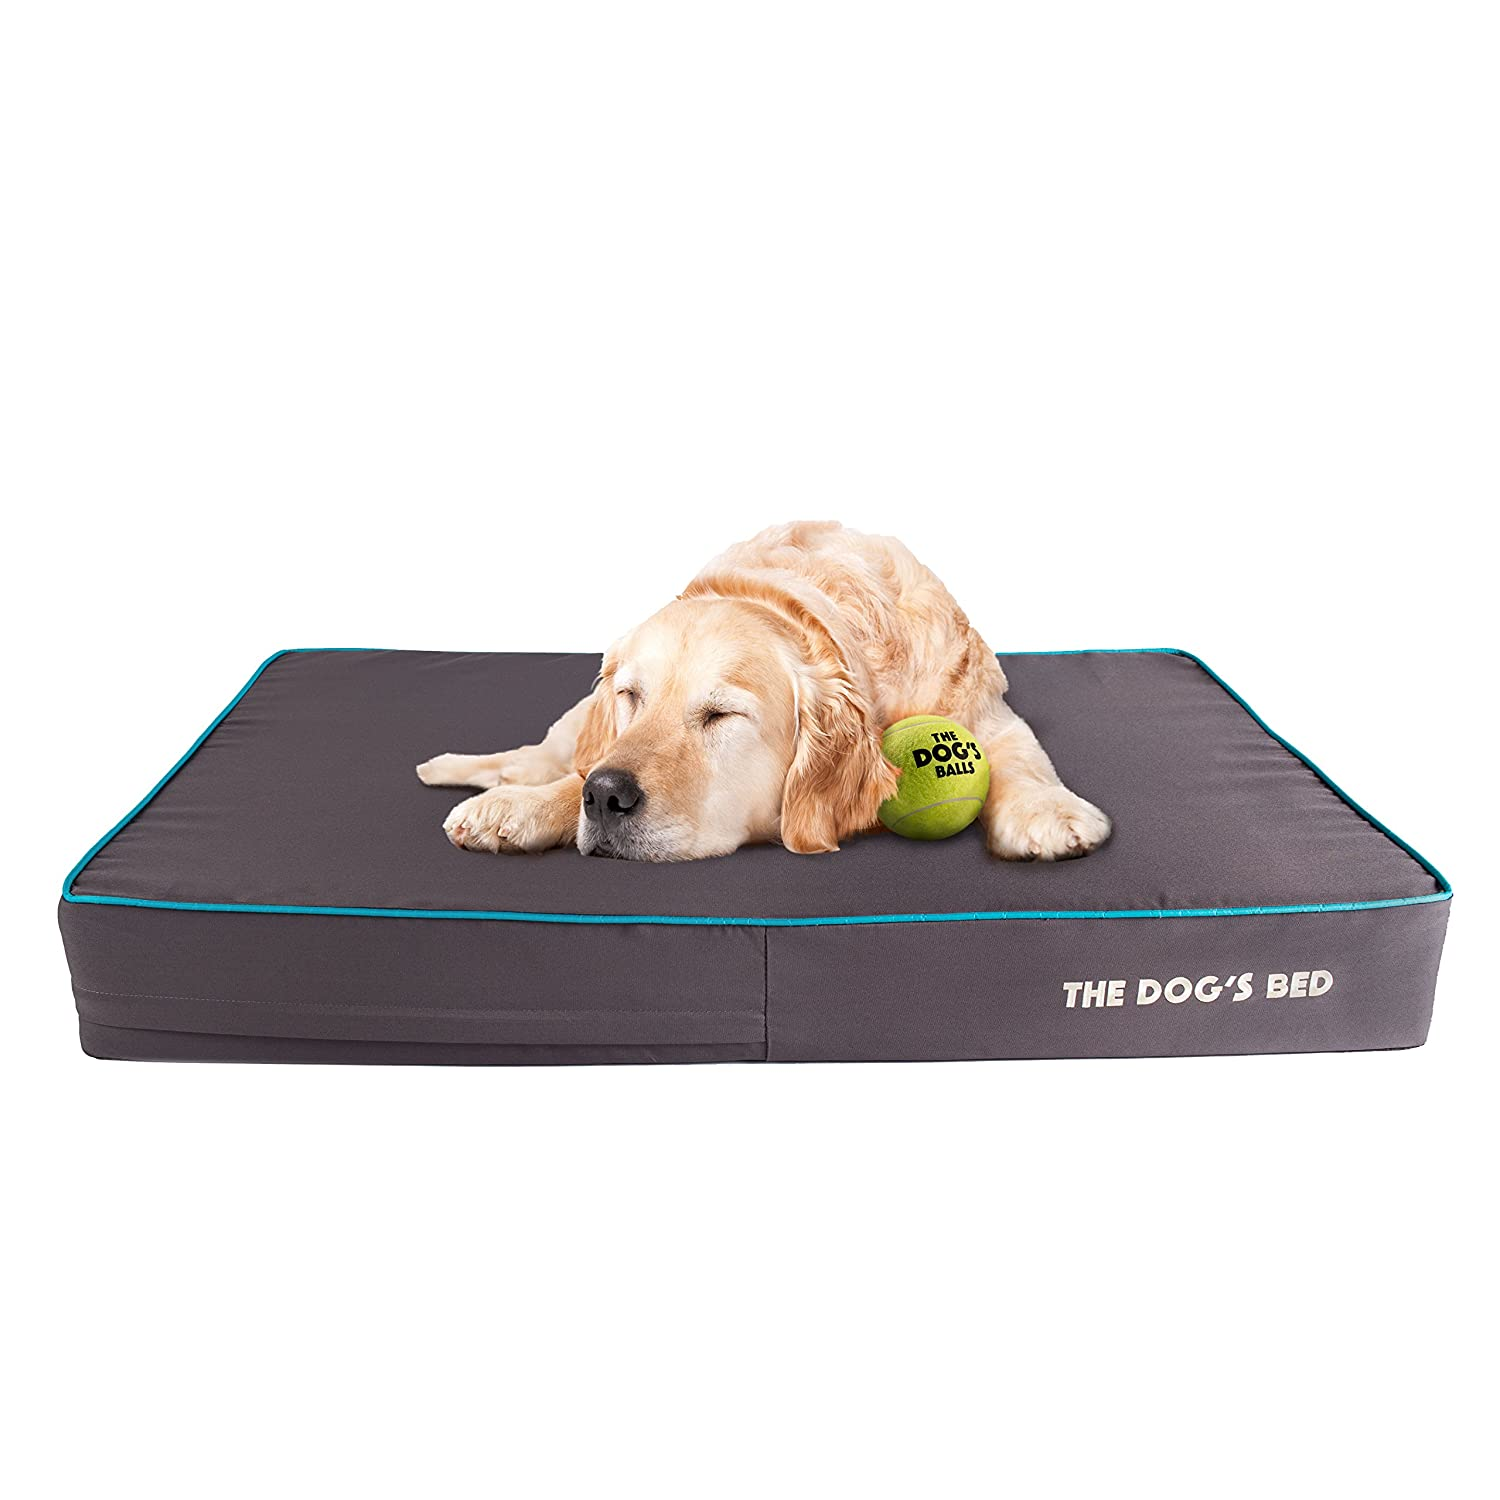 Grey with bluee Trim XL Bed (117x71x15cm)The Dog's Bed, Premium Orthopedic Waterproof Memory Foam Dog Beds, 5 Sizes 7 Colours  Eases Pet Arthritis, Hip Dysplasia & Post Op Pain, Quality Therapeutic Supportive Bed, Washable Oxford Cover